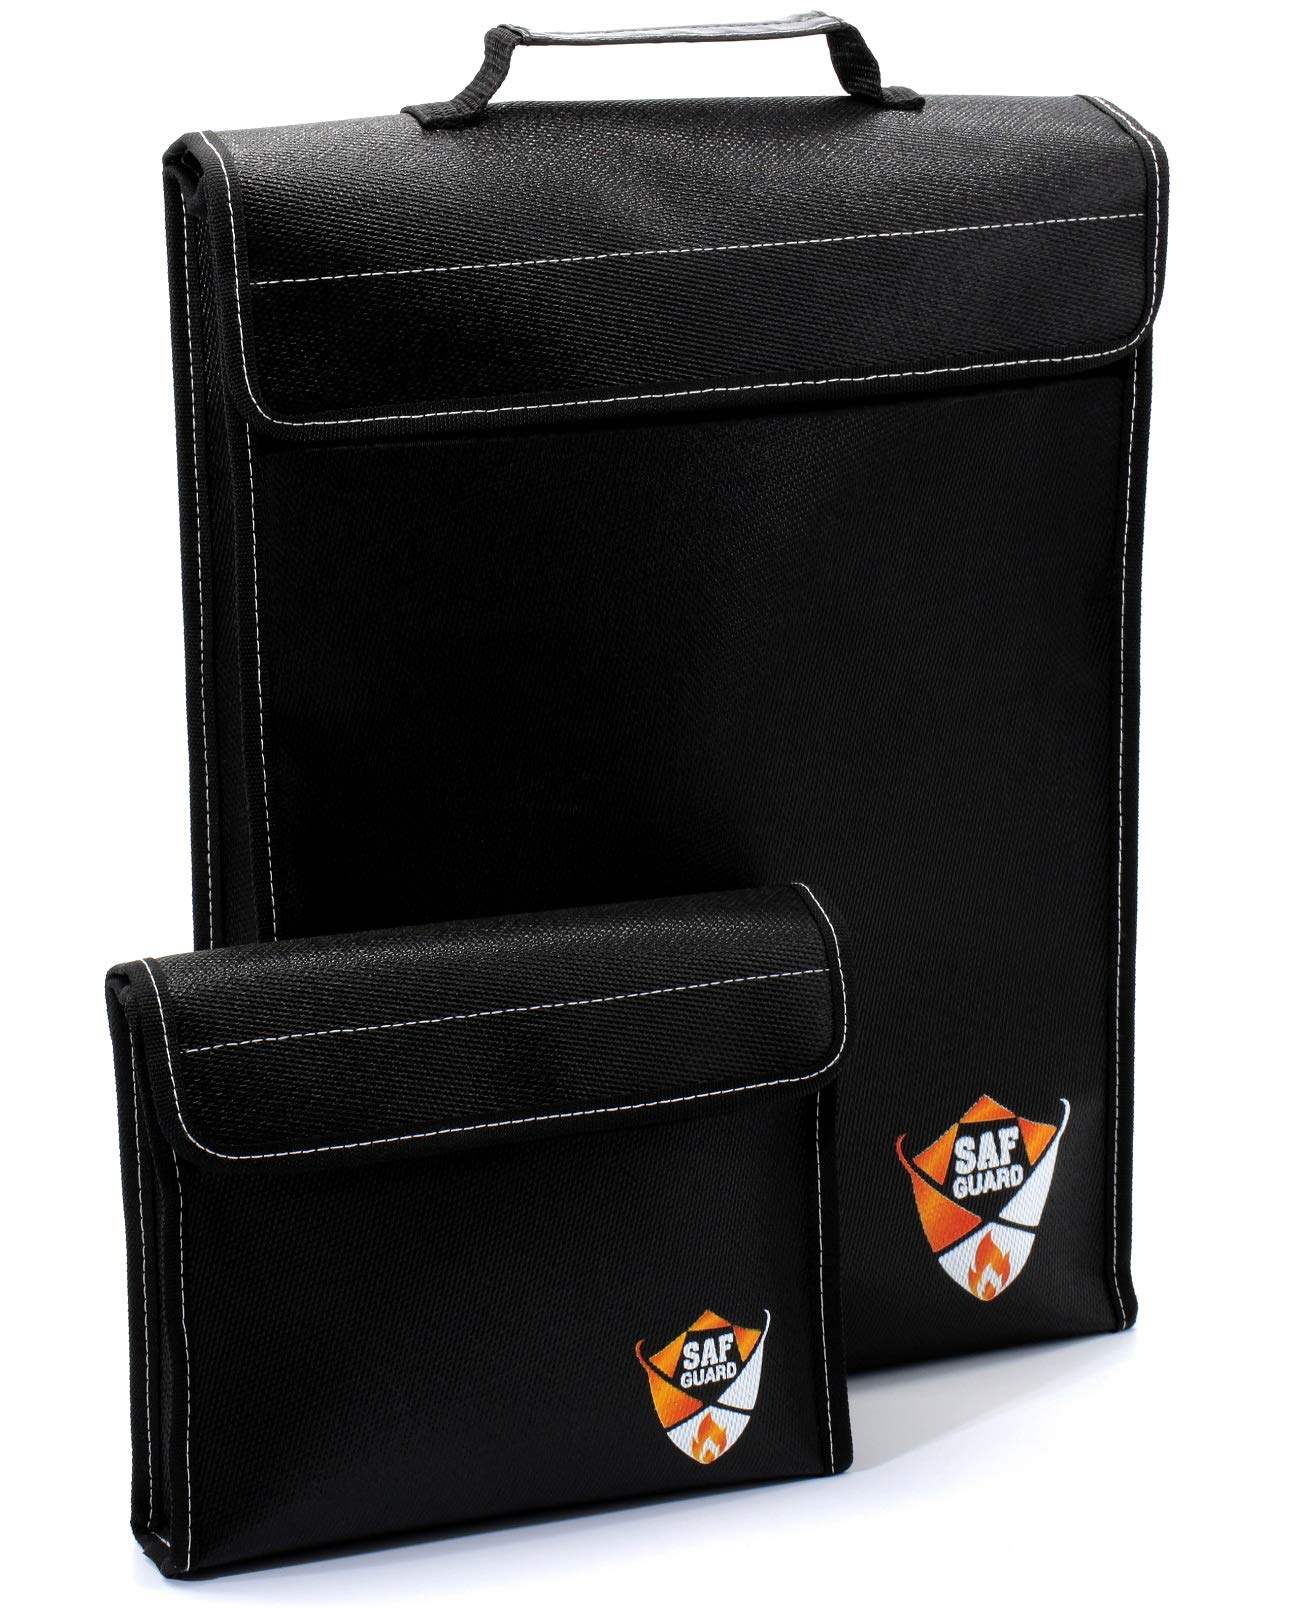 Fireproof Document Bags – Set of 2 Fire Resistant Bags – Premium Leather Handle –For Important Documents, Lipo Battery Bag, Money, Jewelry Storage – Waterproof, Explosion-proof, FREE eBook – SAF GUARD